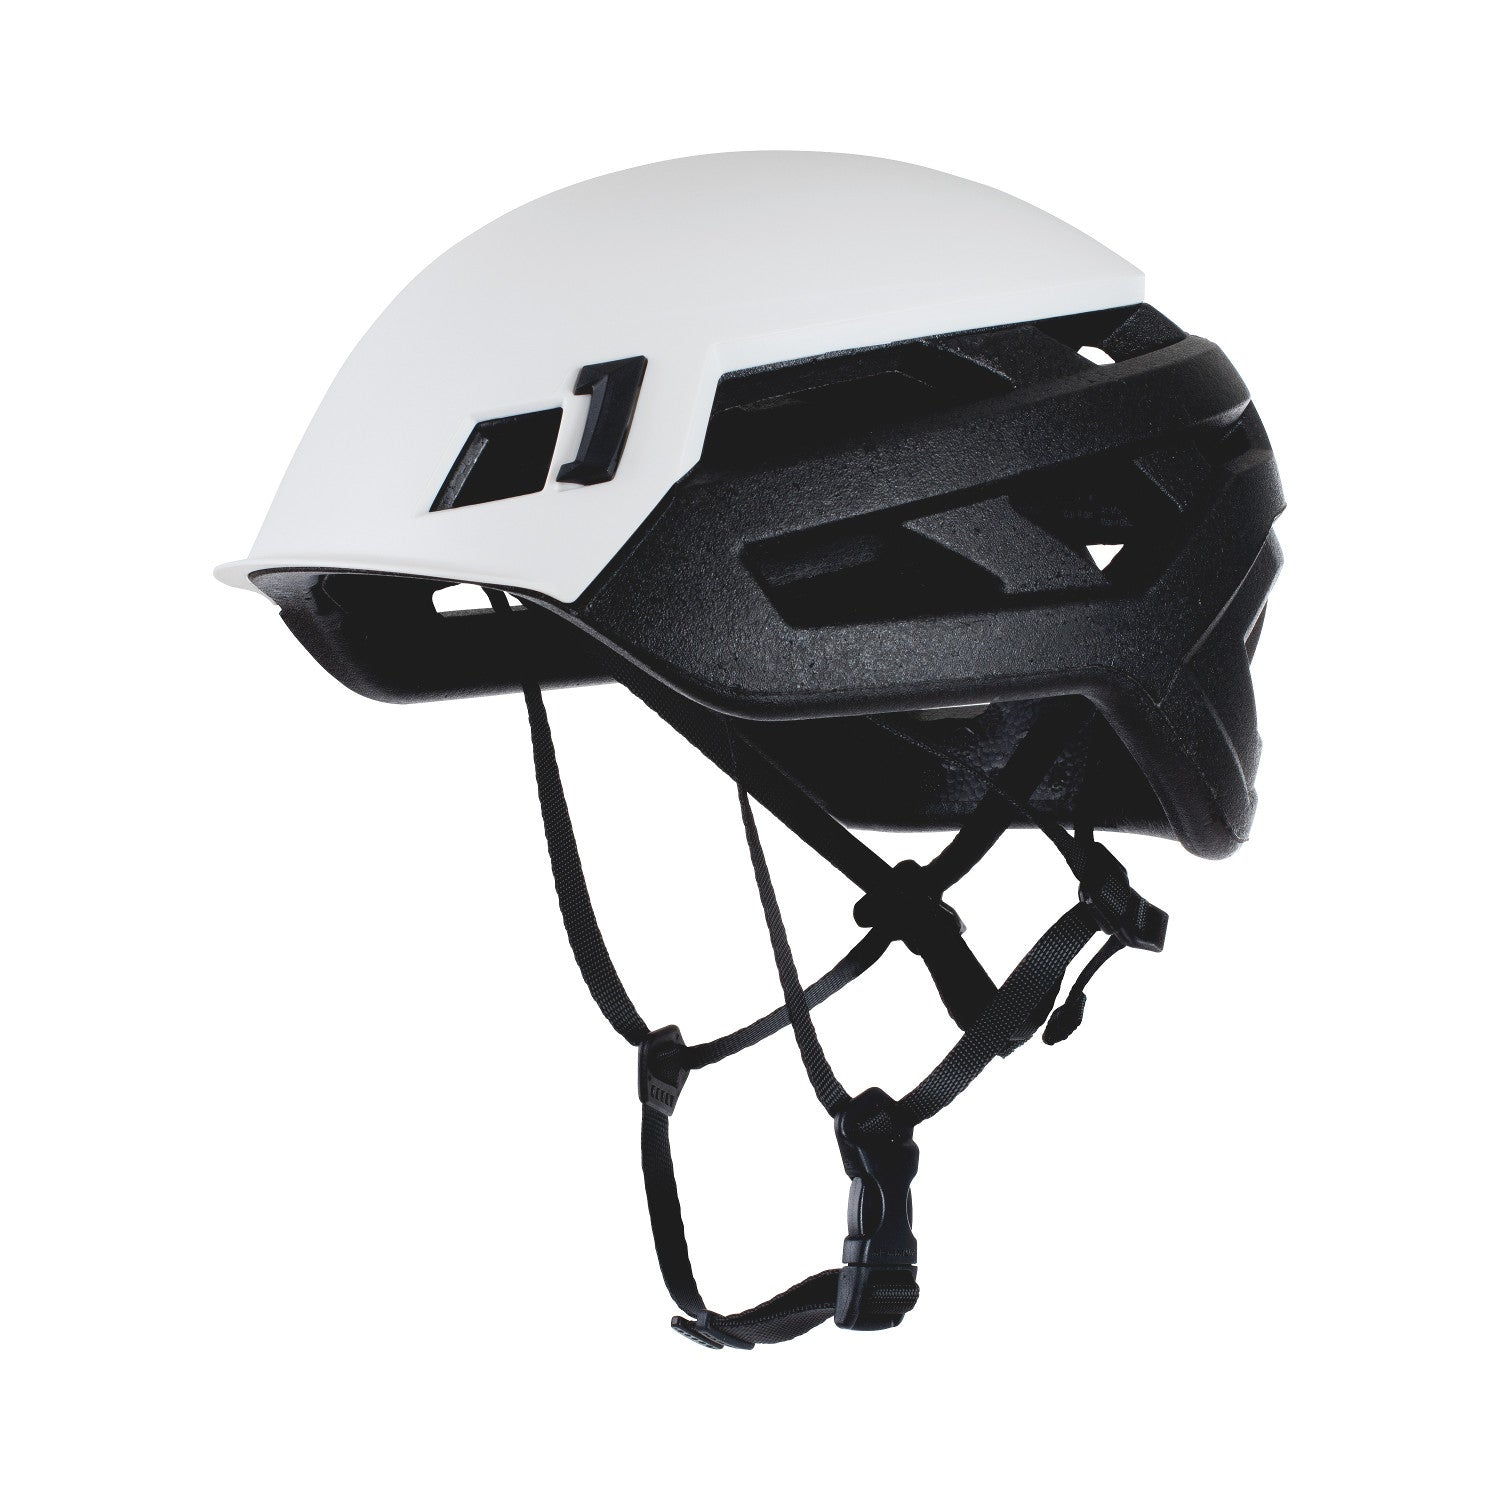 Mammut Wall Rider climbing helmet, inner side view in black and white colours